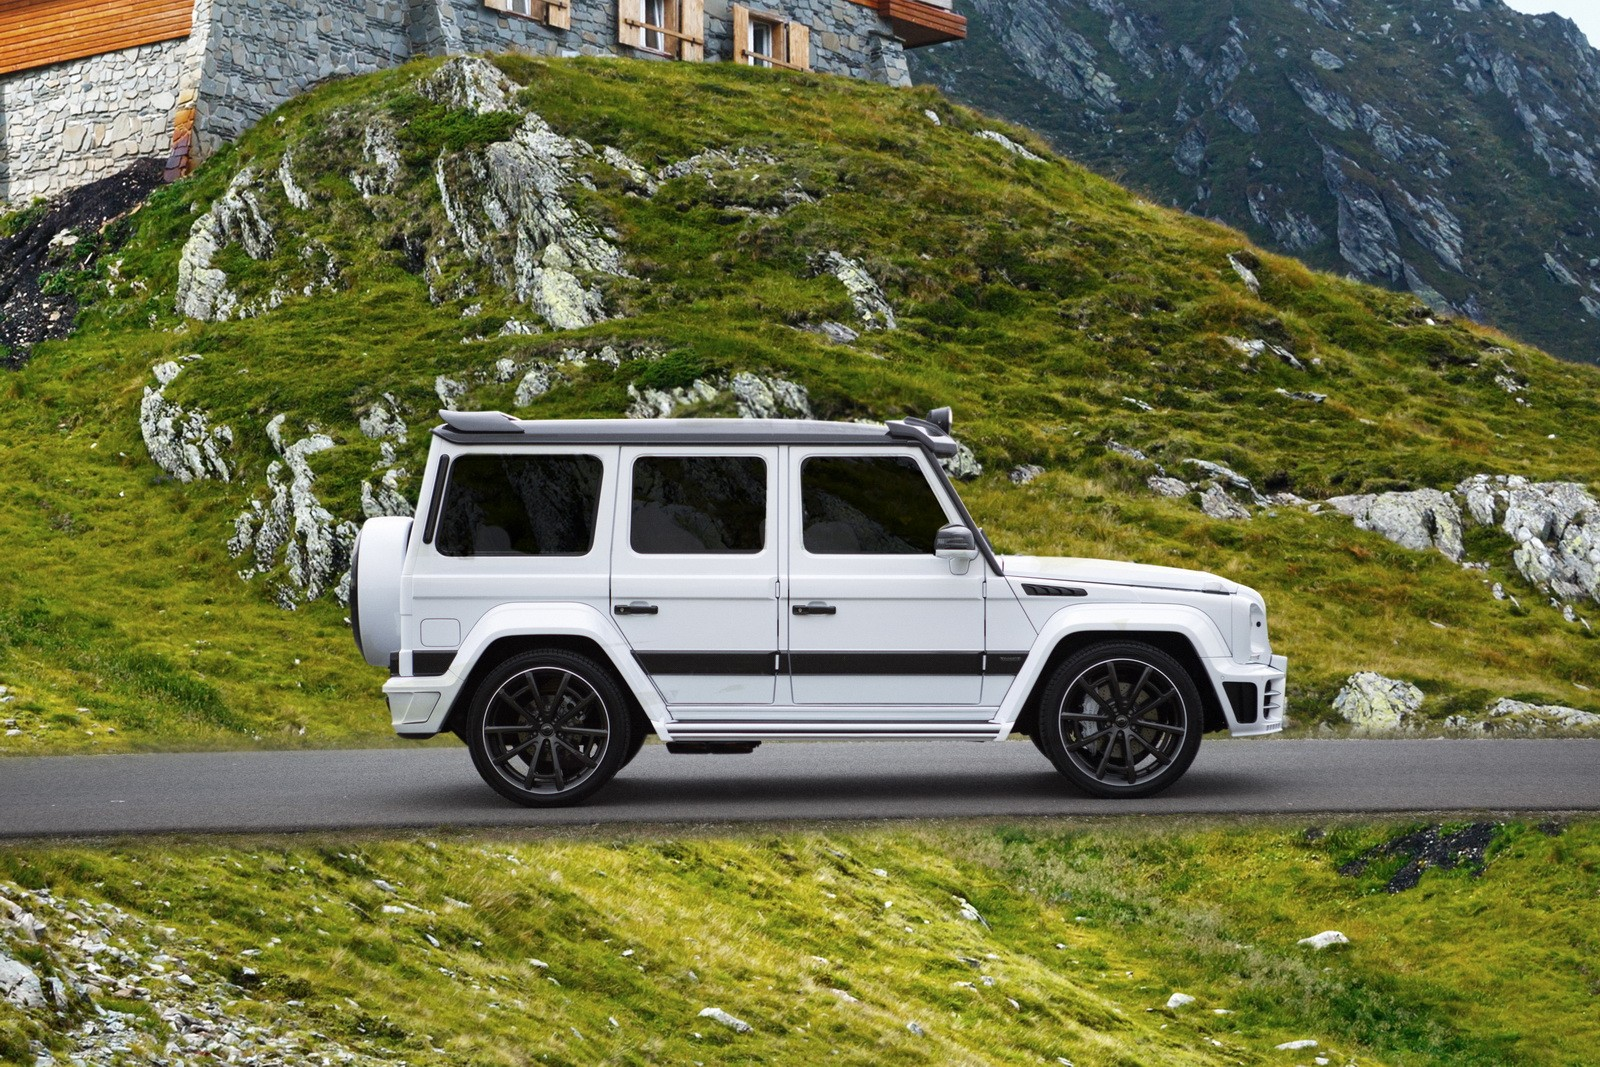 mansory updates mercedes benz g63 amg gronos a mercedes benz fan blog. Black Bedroom Furniture Sets. Home Design Ideas